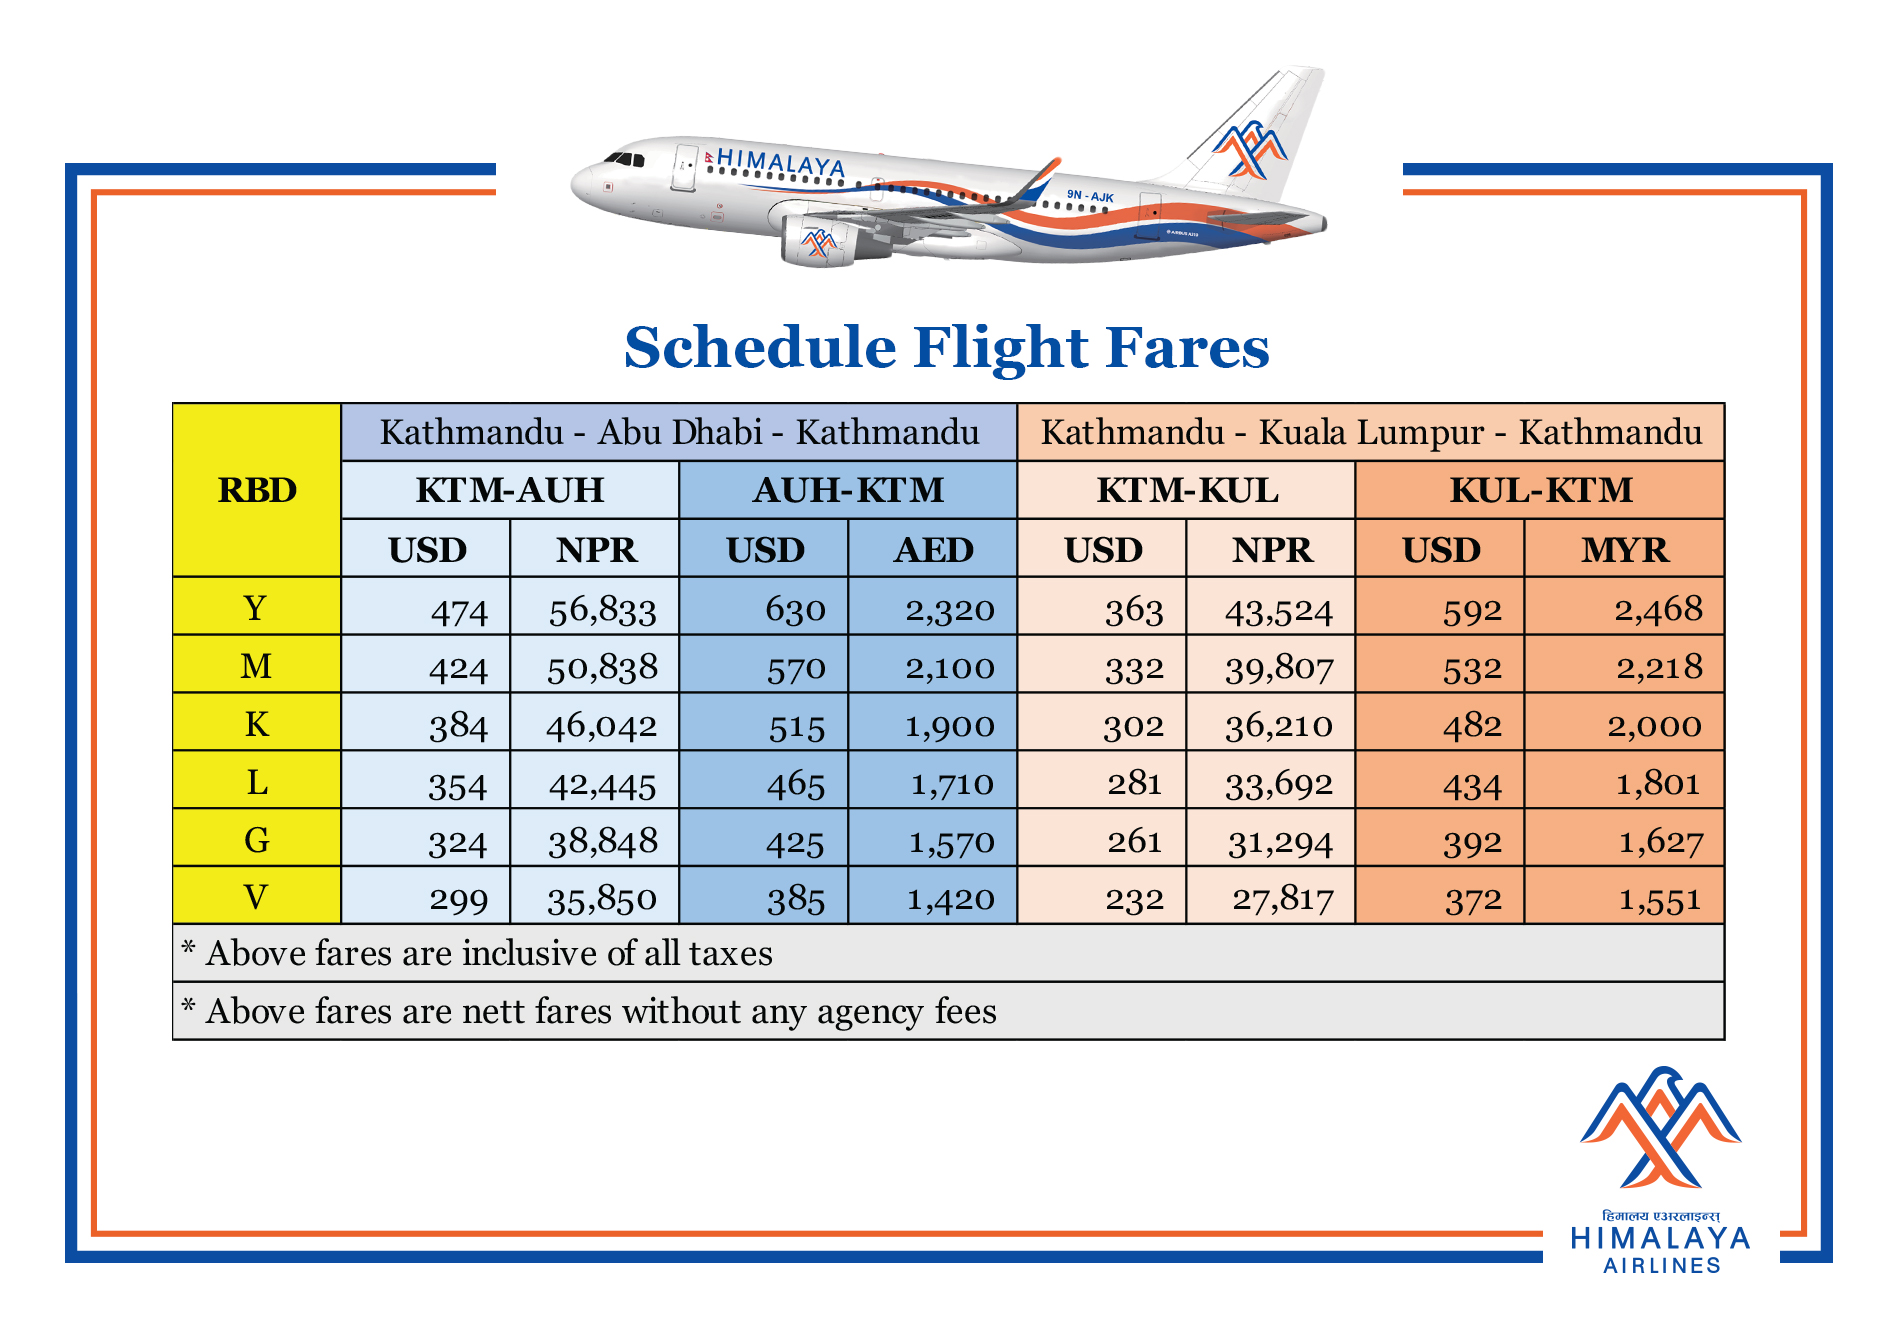 schedule-flight-fares-auh-kul-english.jpg